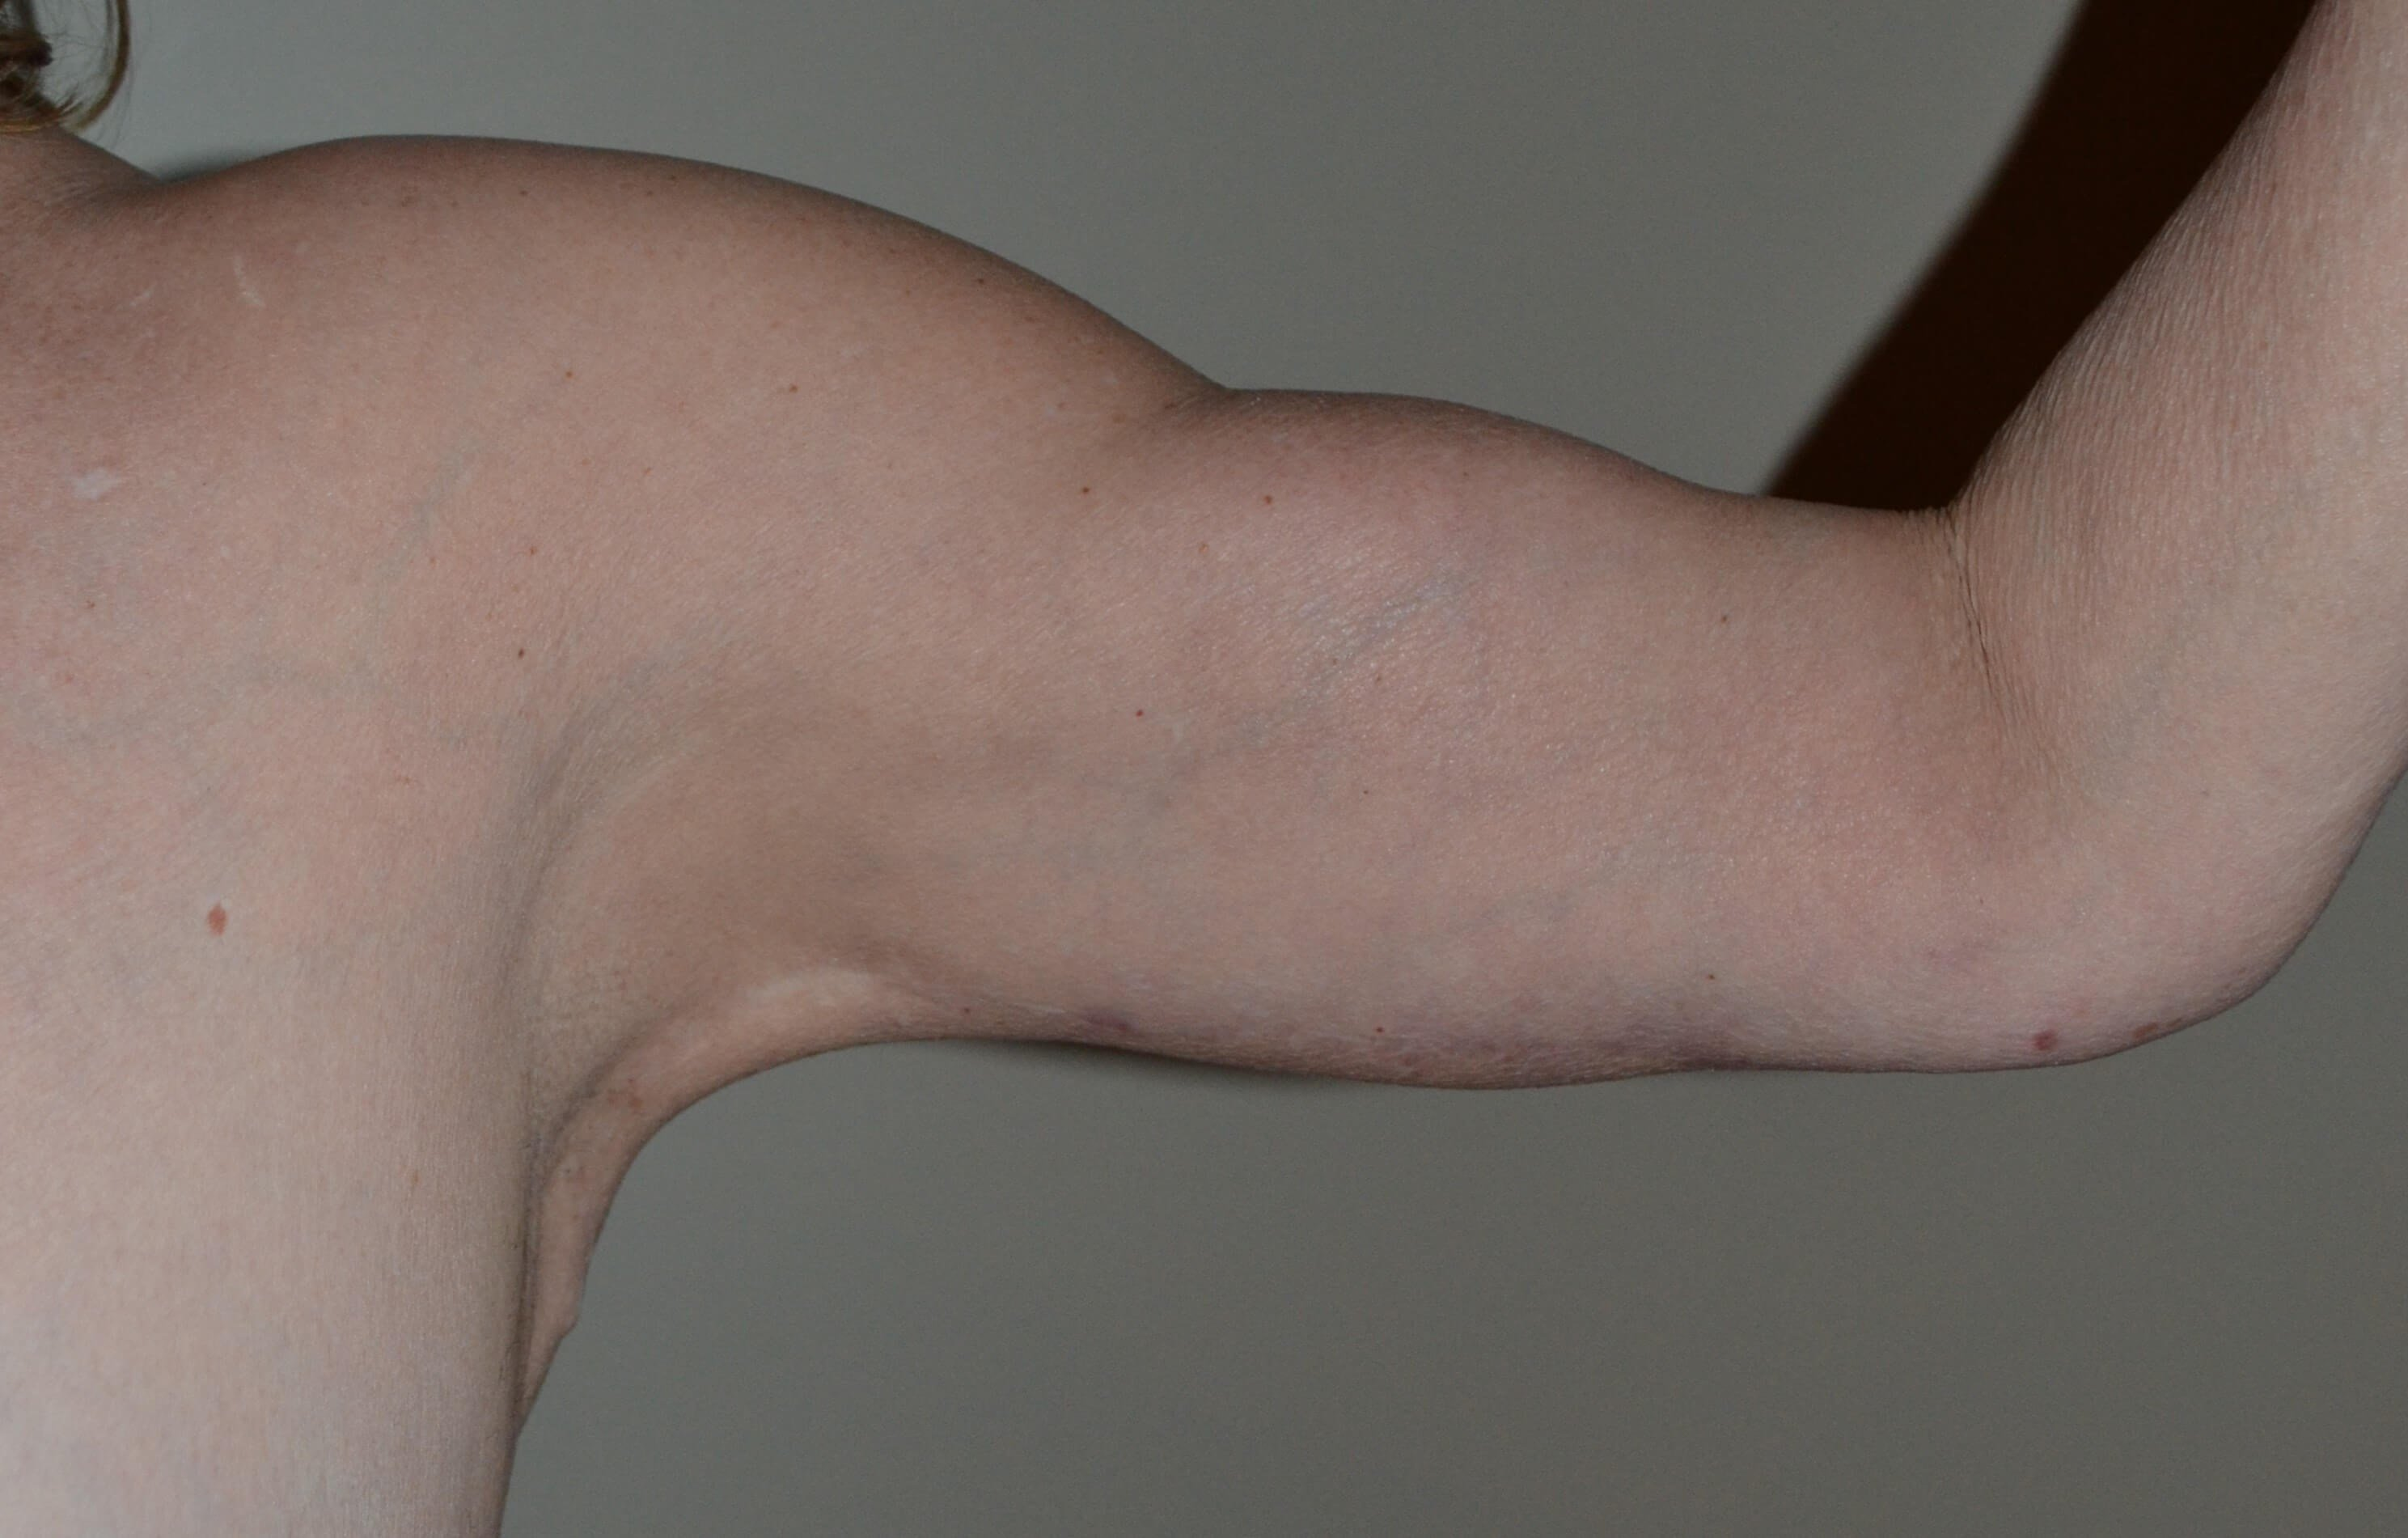 Arm liposuction and lift After, 1 year post surgery.